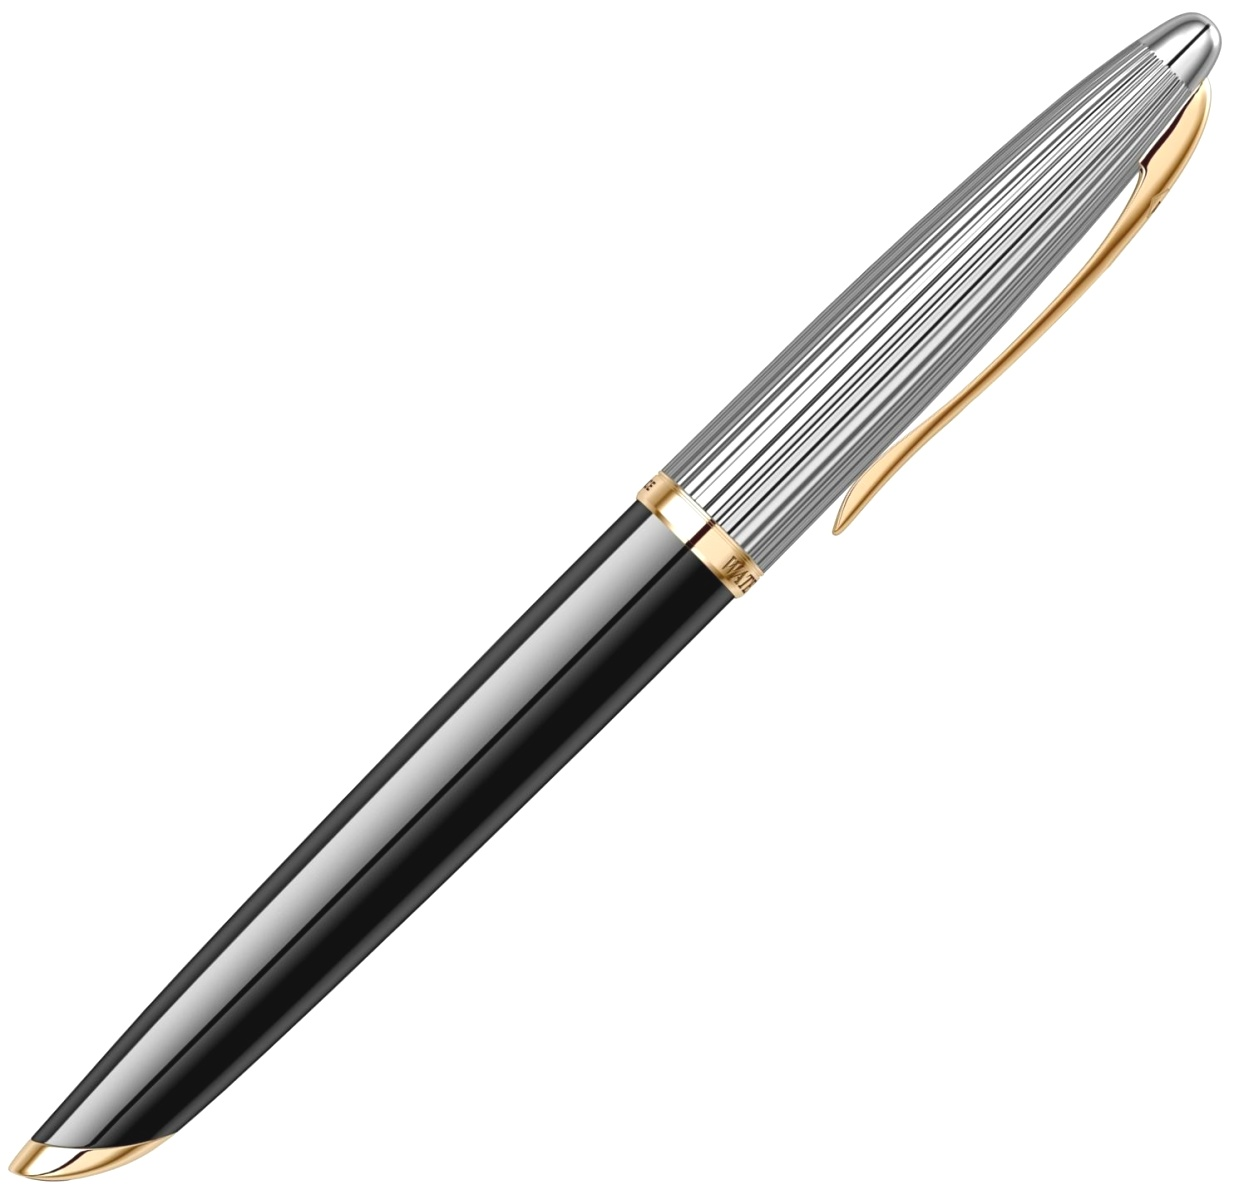 Ручка-роллер Waterman Carene DeLuxe, Black GT, фото 5